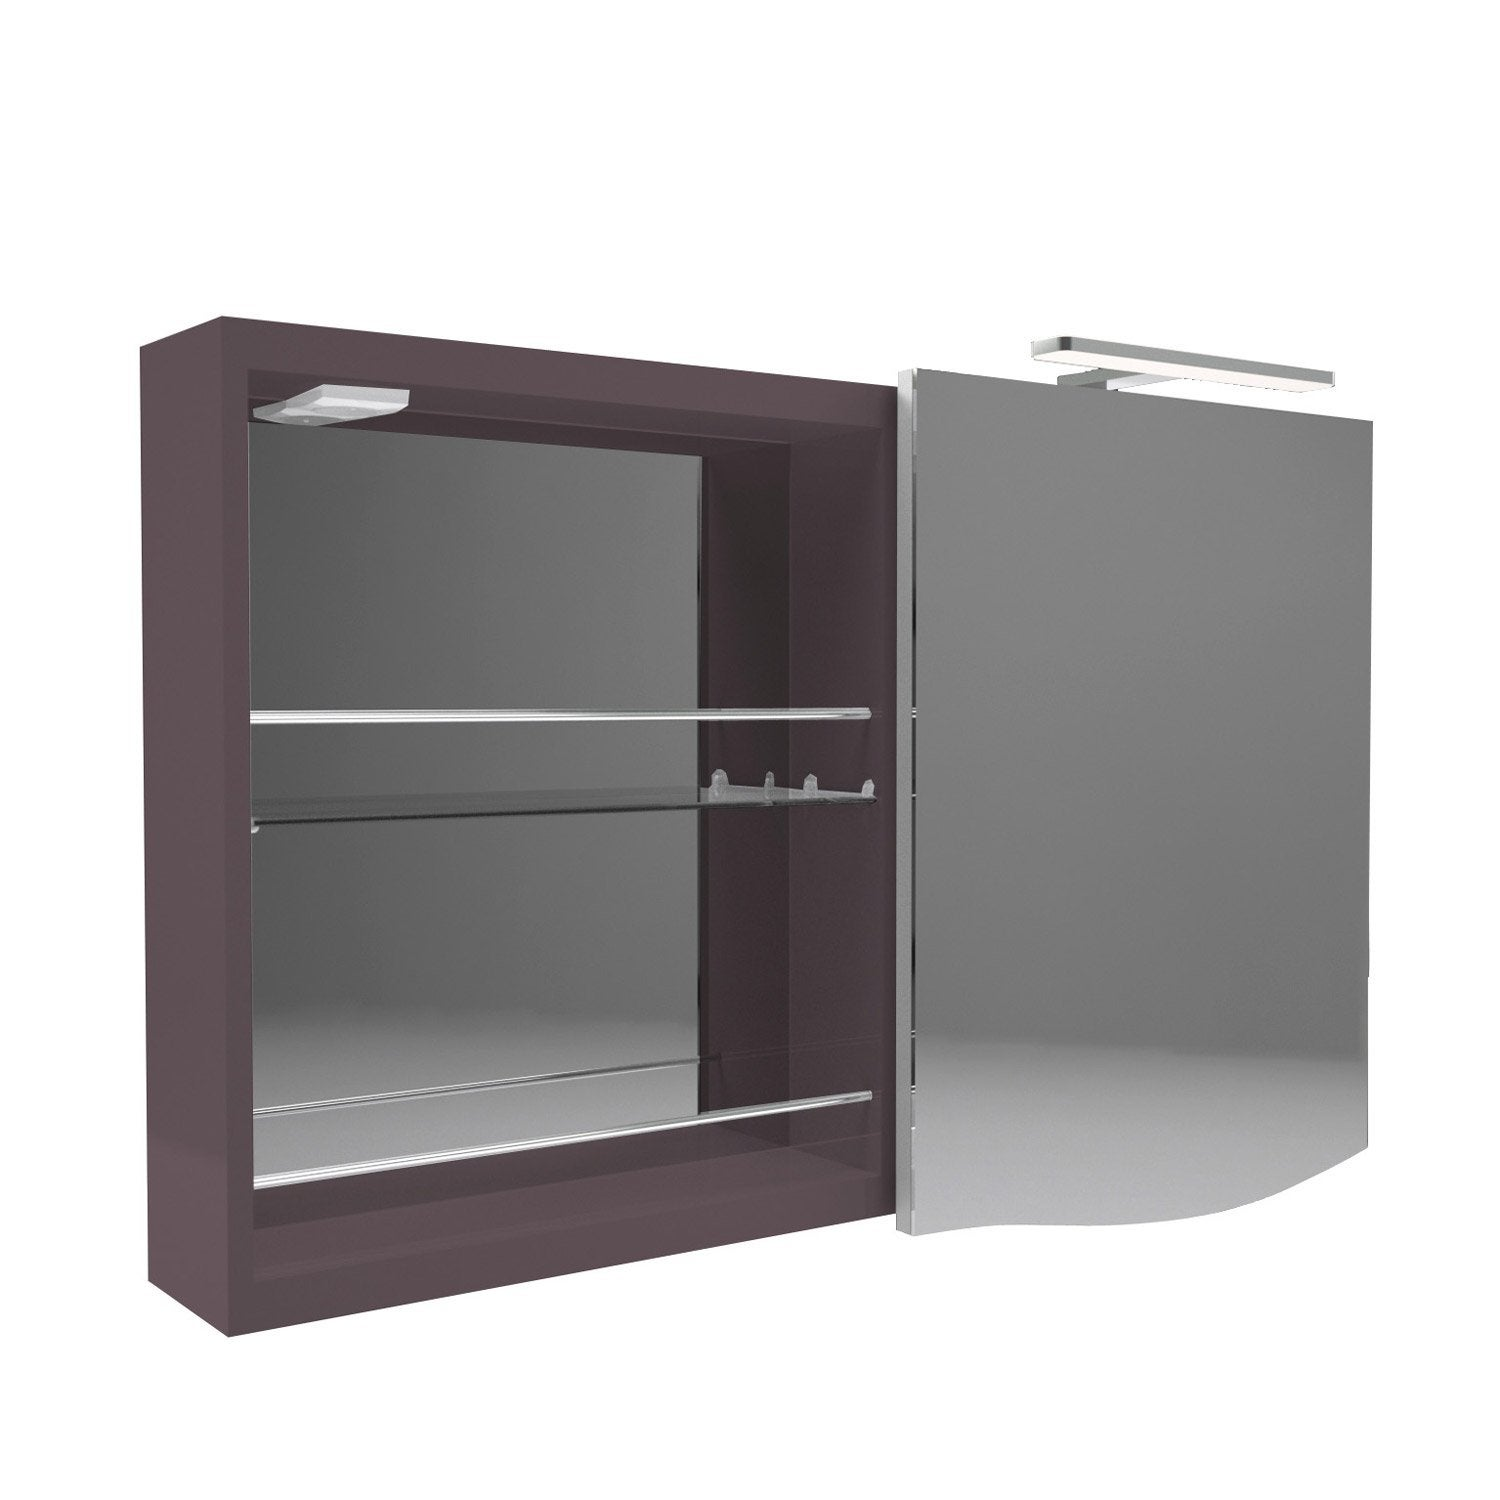 armoire de toilette lumineuse l 100 cm marron decotec. Black Bedroom Furniture Sets. Home Design Ideas